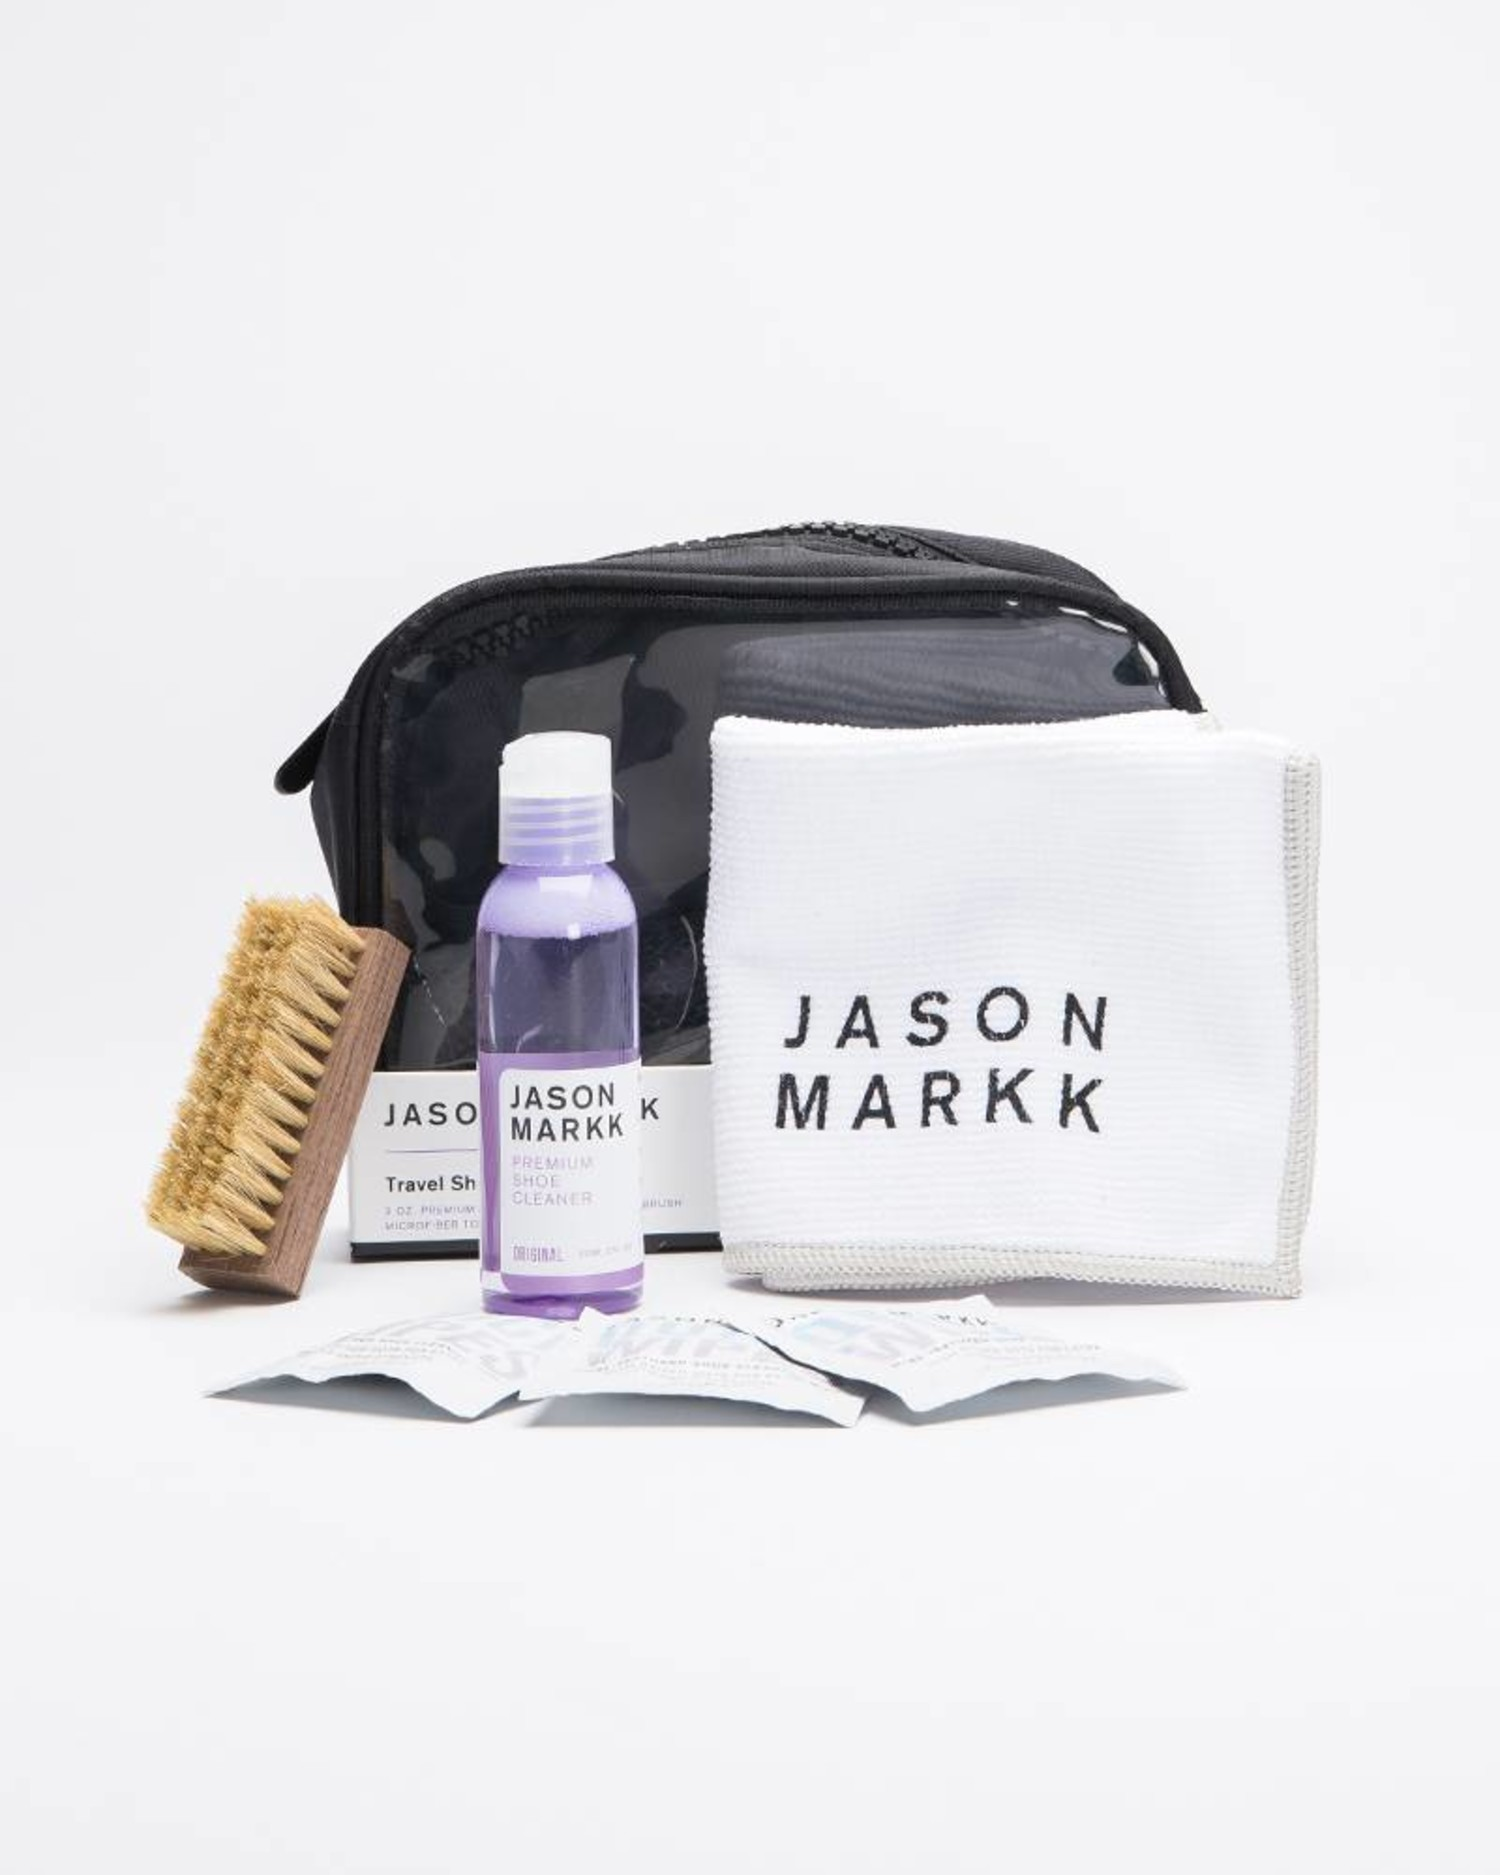 Jason Markk Premium Shoe Cleaning Travelkit in Pouch